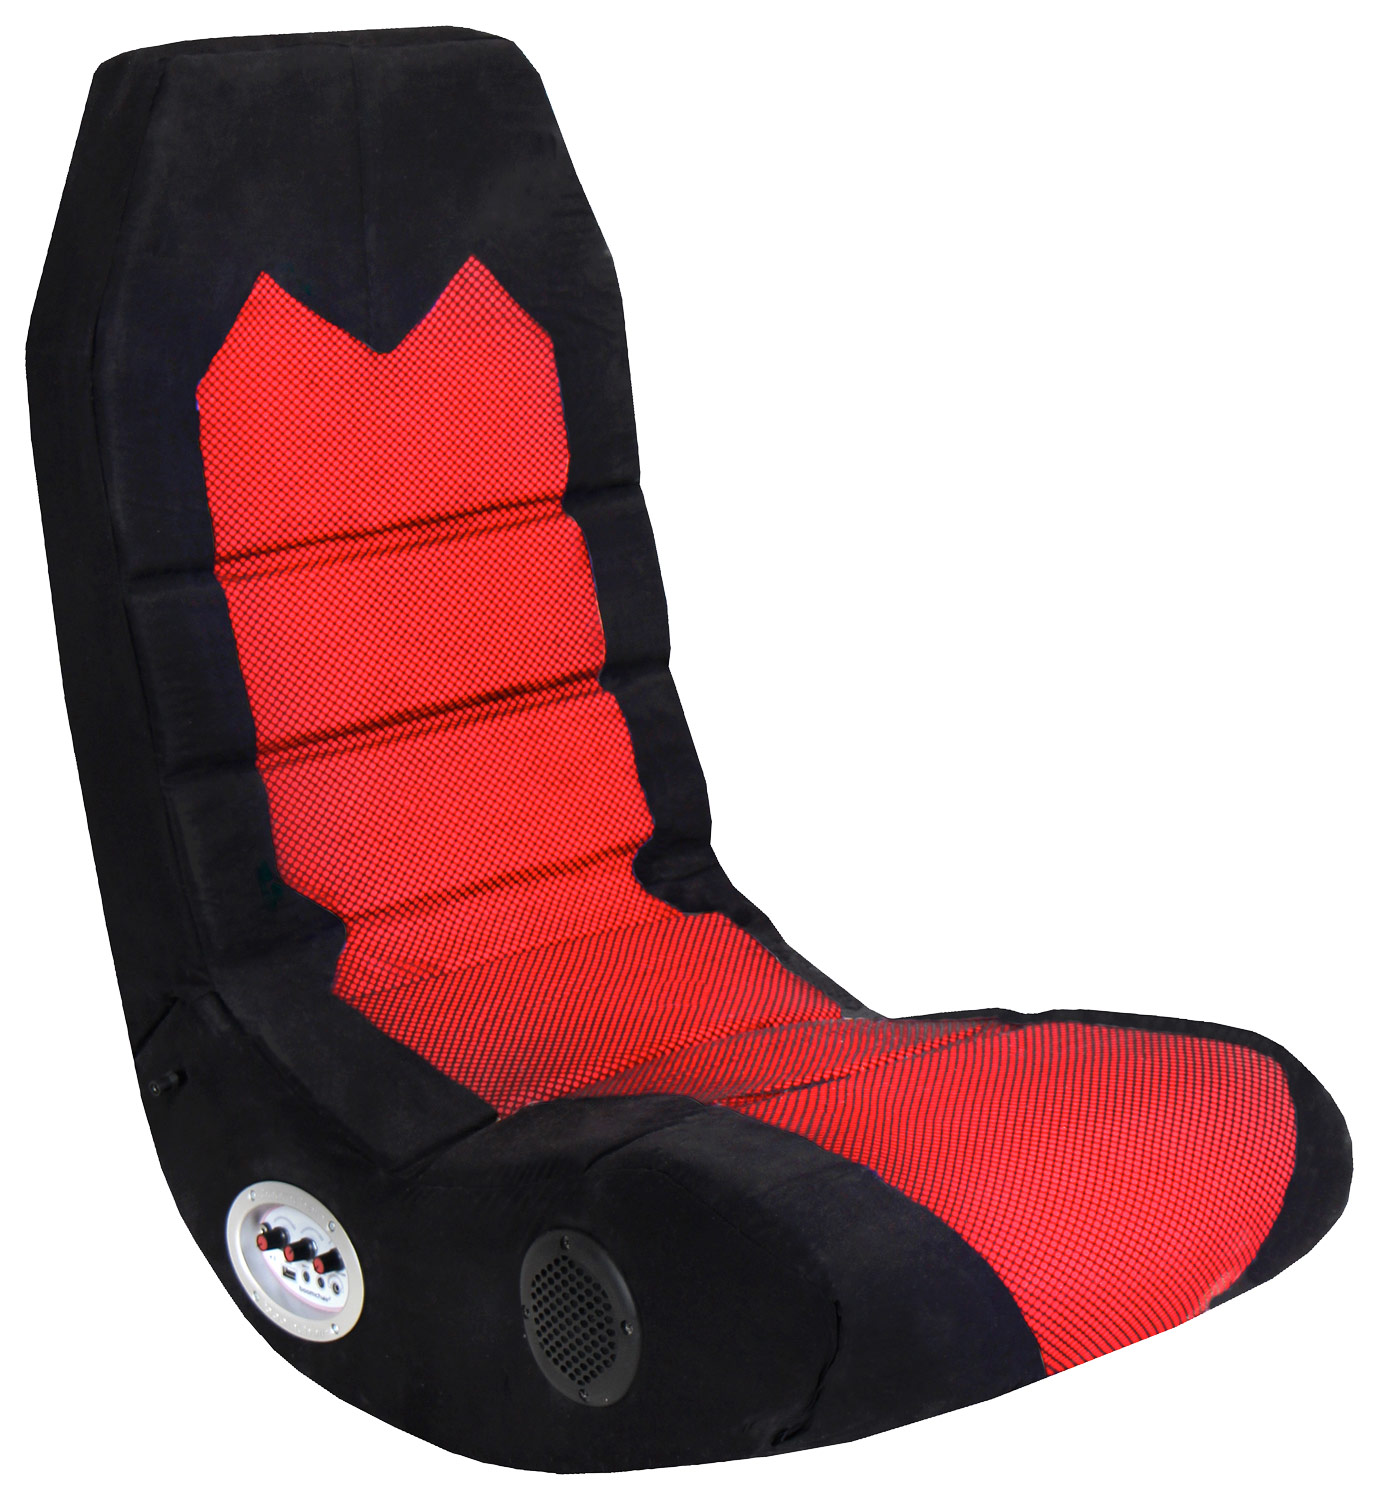 gaming chairs best buy upholstered chair with arms customer reviews boomchair bm edge k